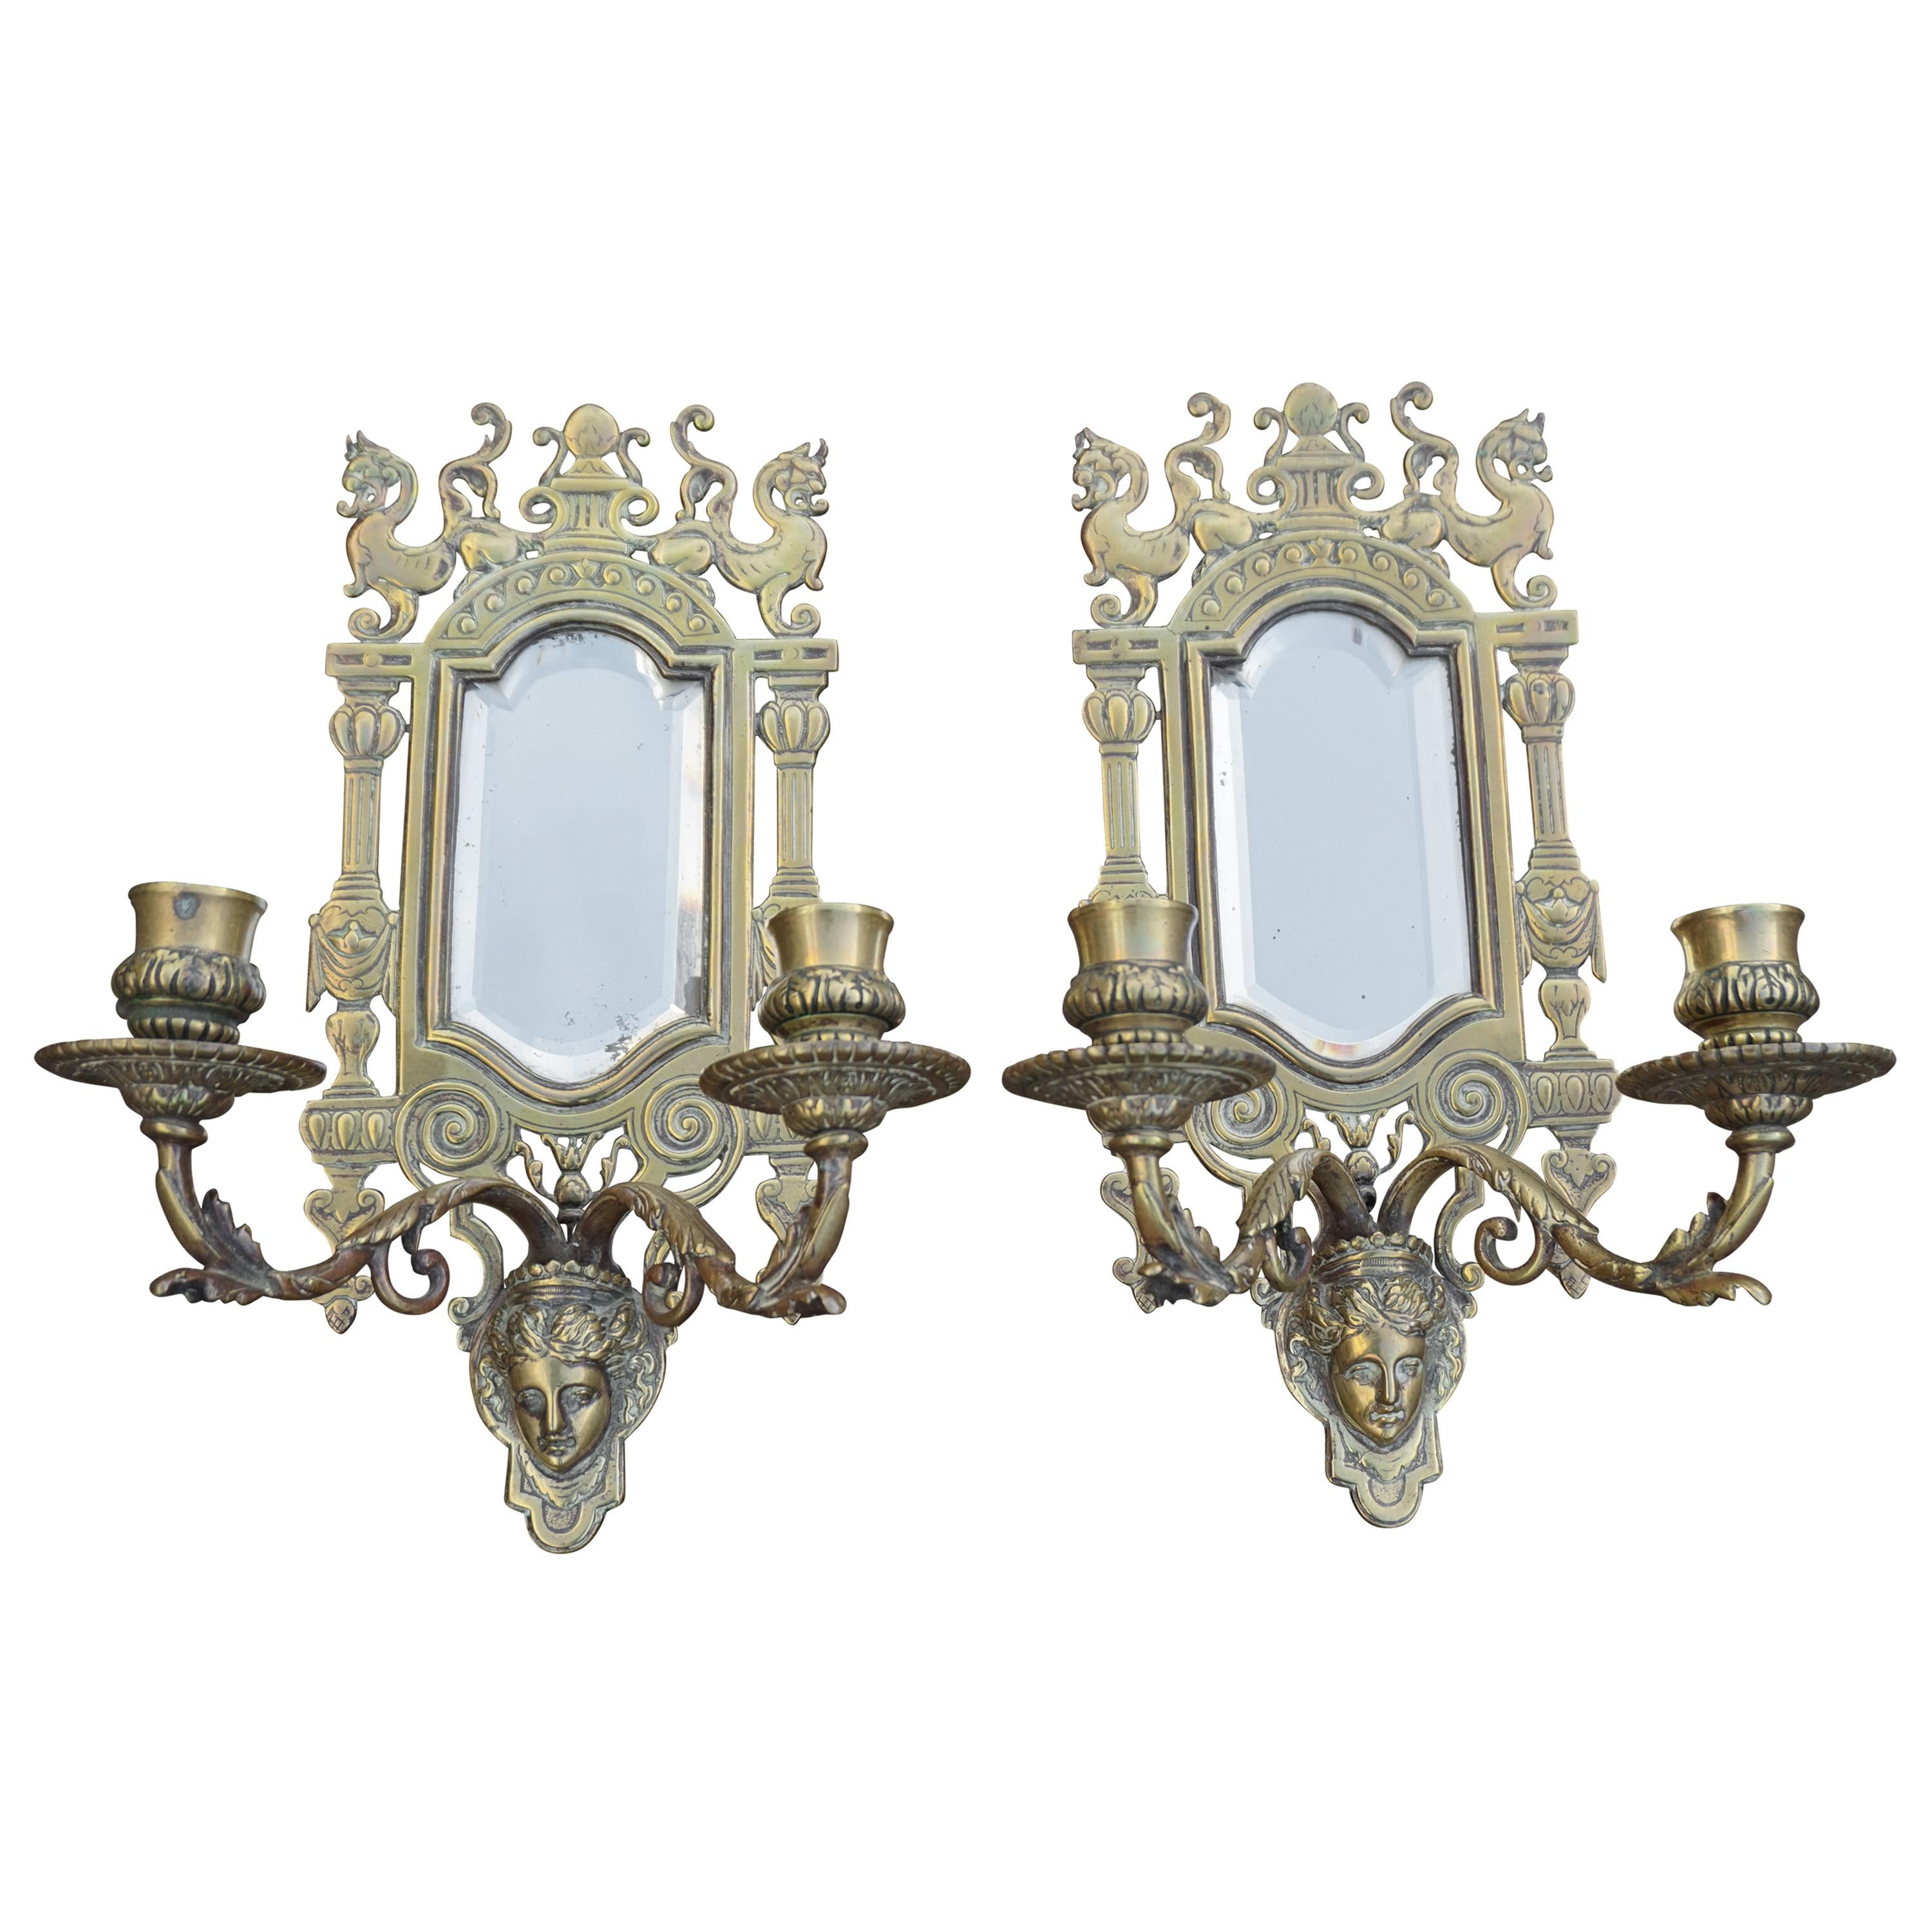 Pair of Bronze Wall Sconce Candleholders with Mirrors & Griffins and More